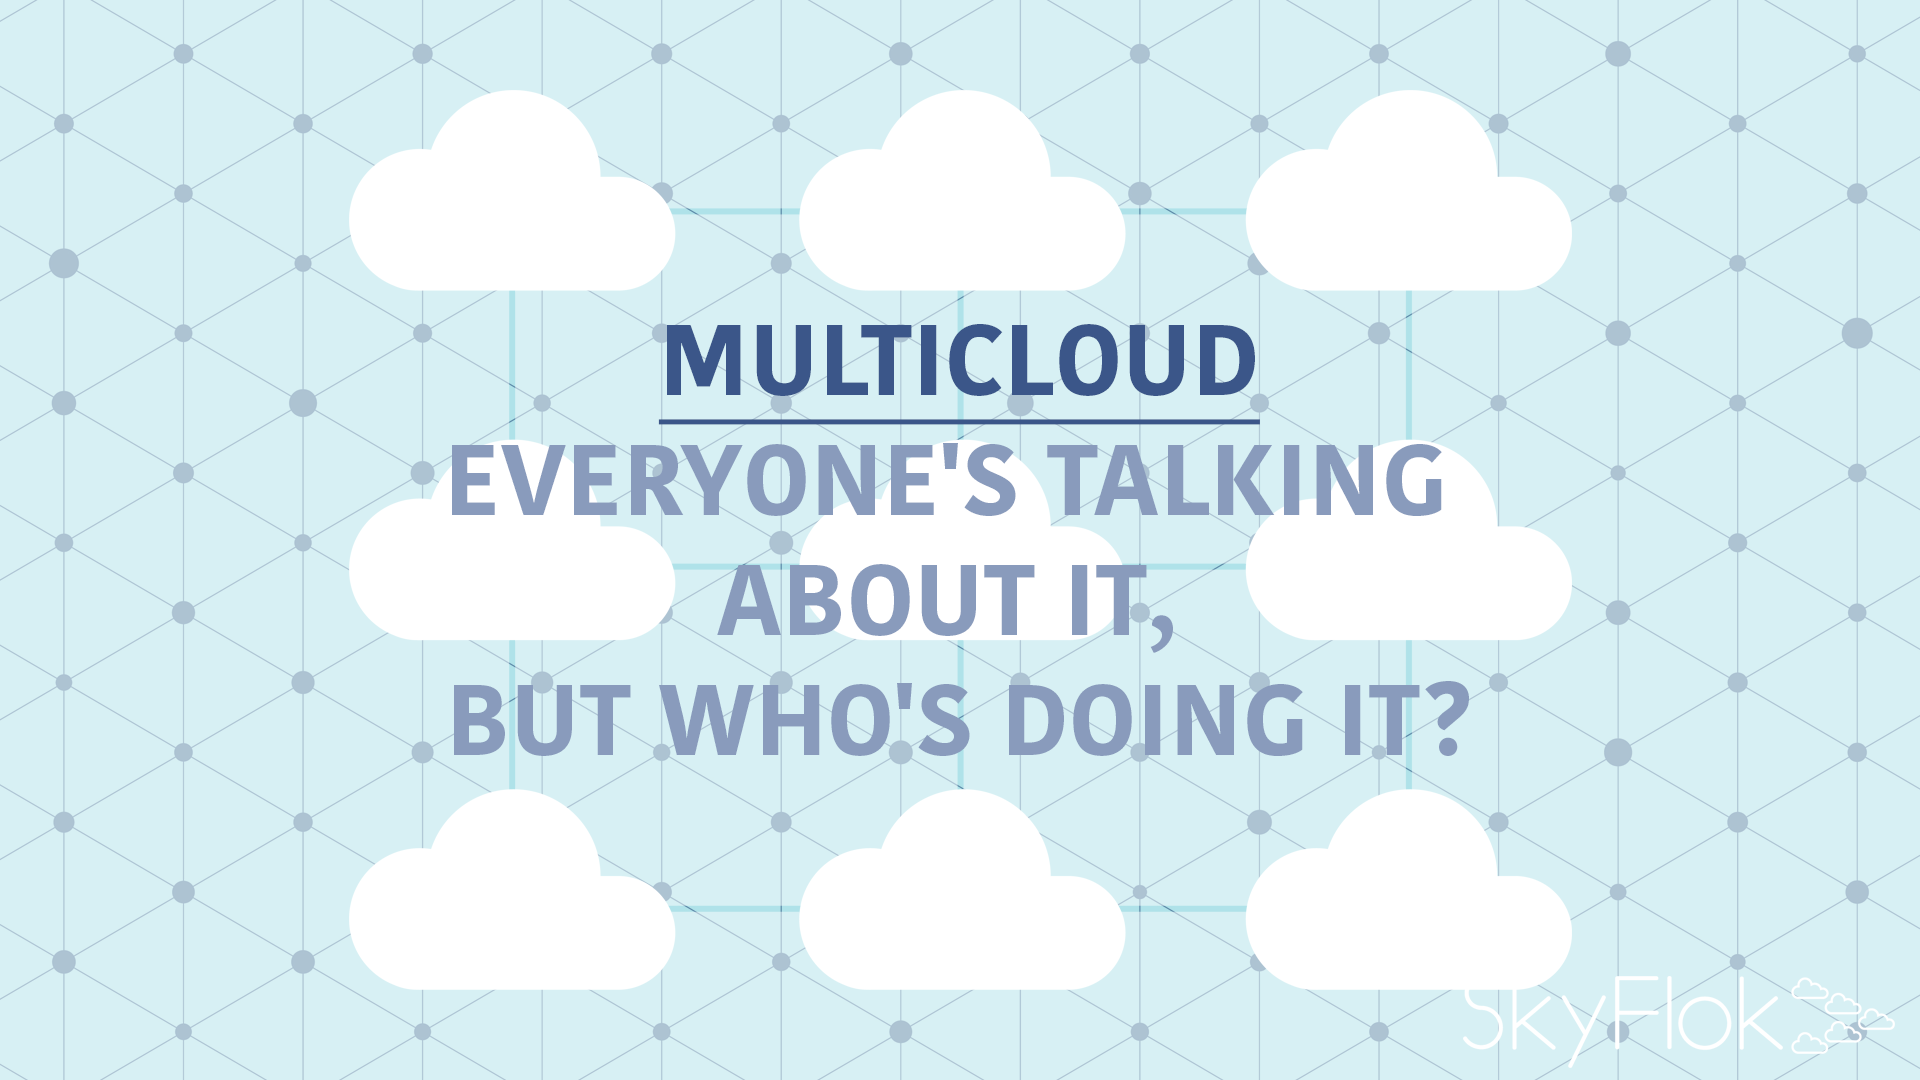 Multicloud — Everyone's Talking About It, But Who's Doing It?